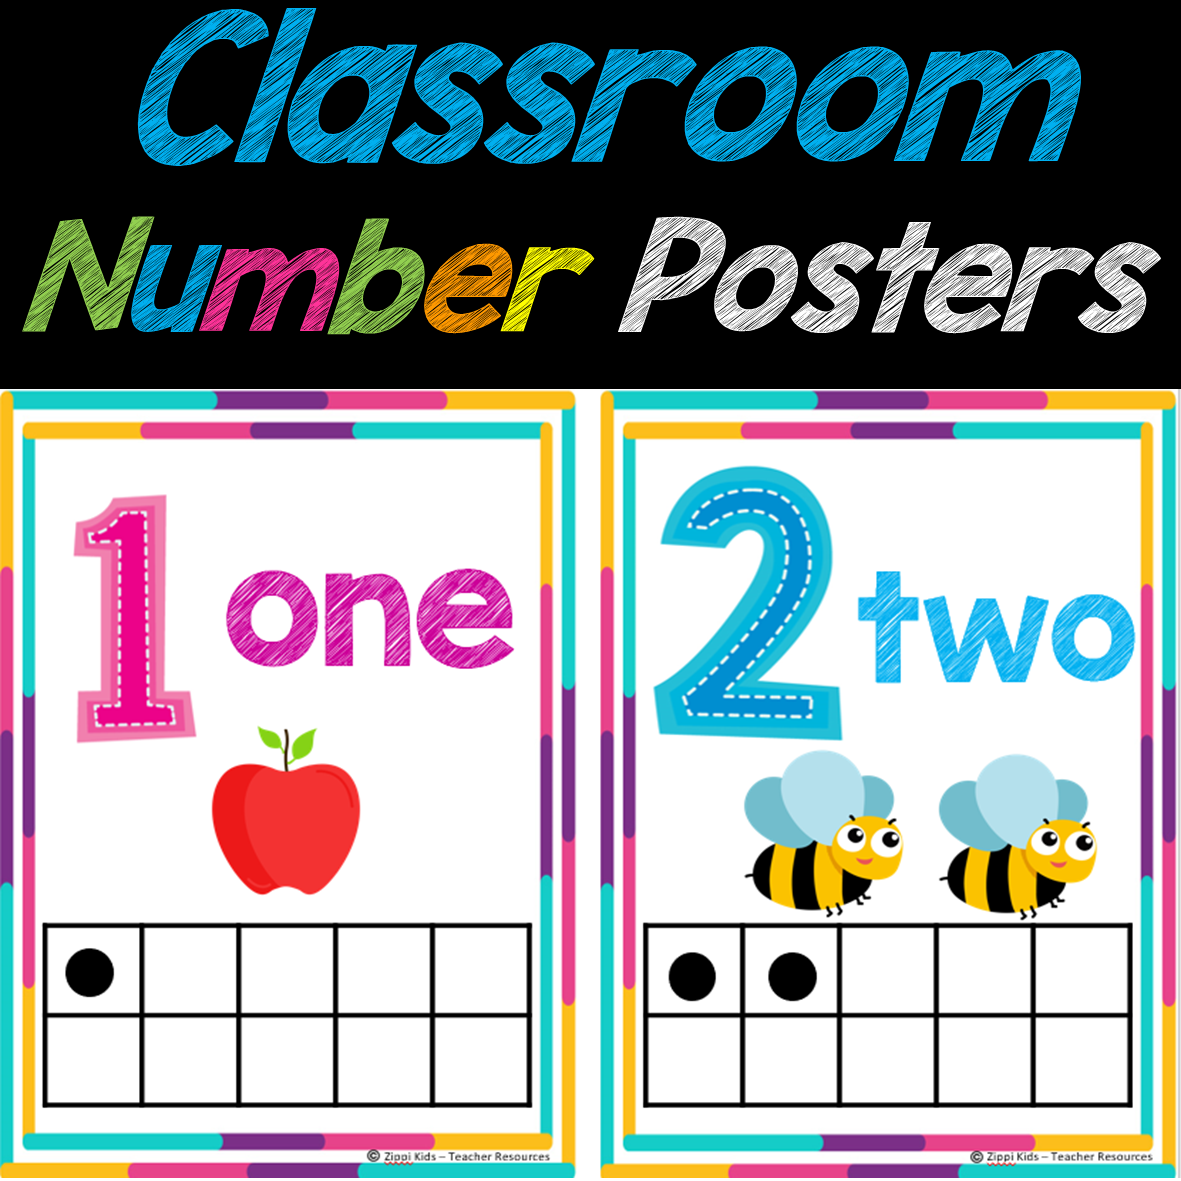 Colorful Classroom Number Posters to Print